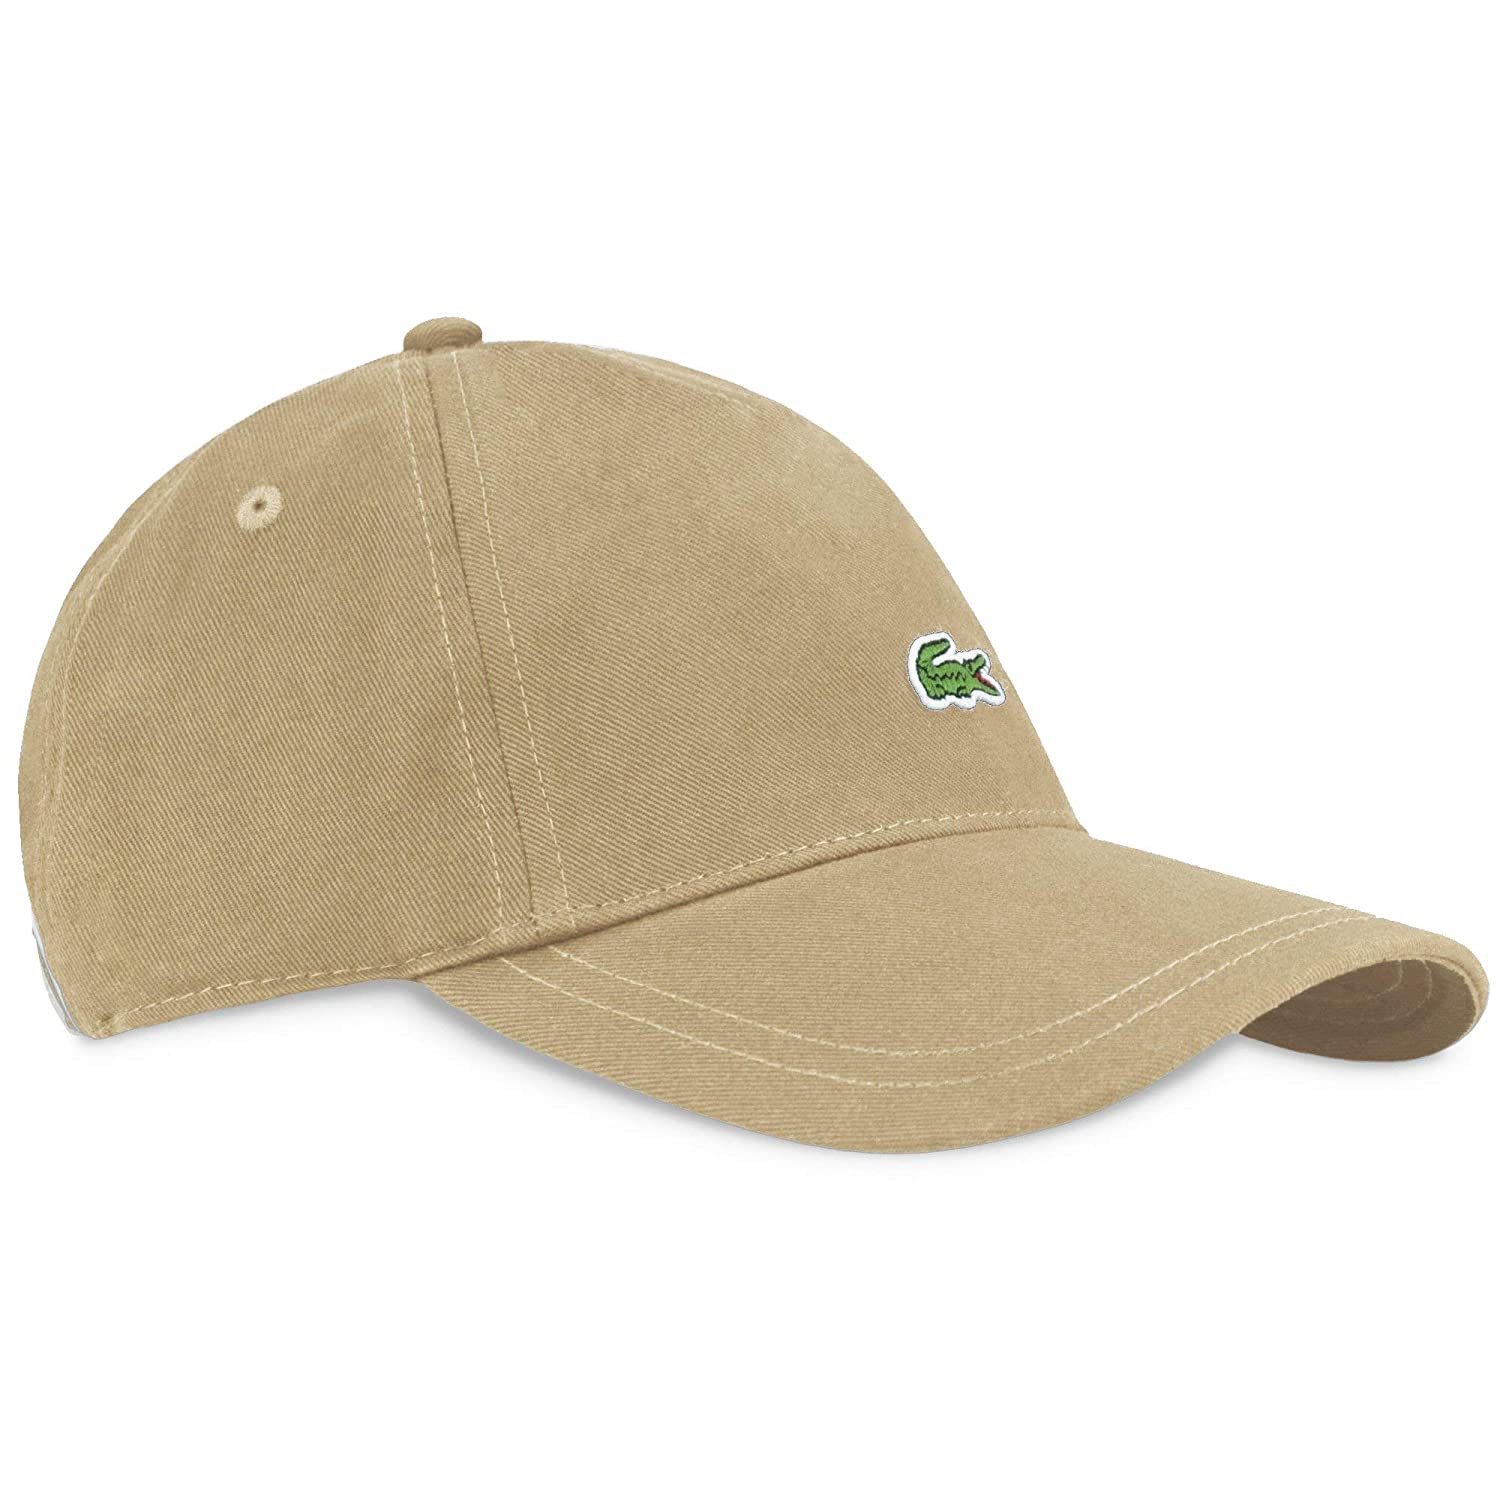 Lacoste RK4714 - Gorra Bordada, Color Beige: Amazon.es: Ropa y ...